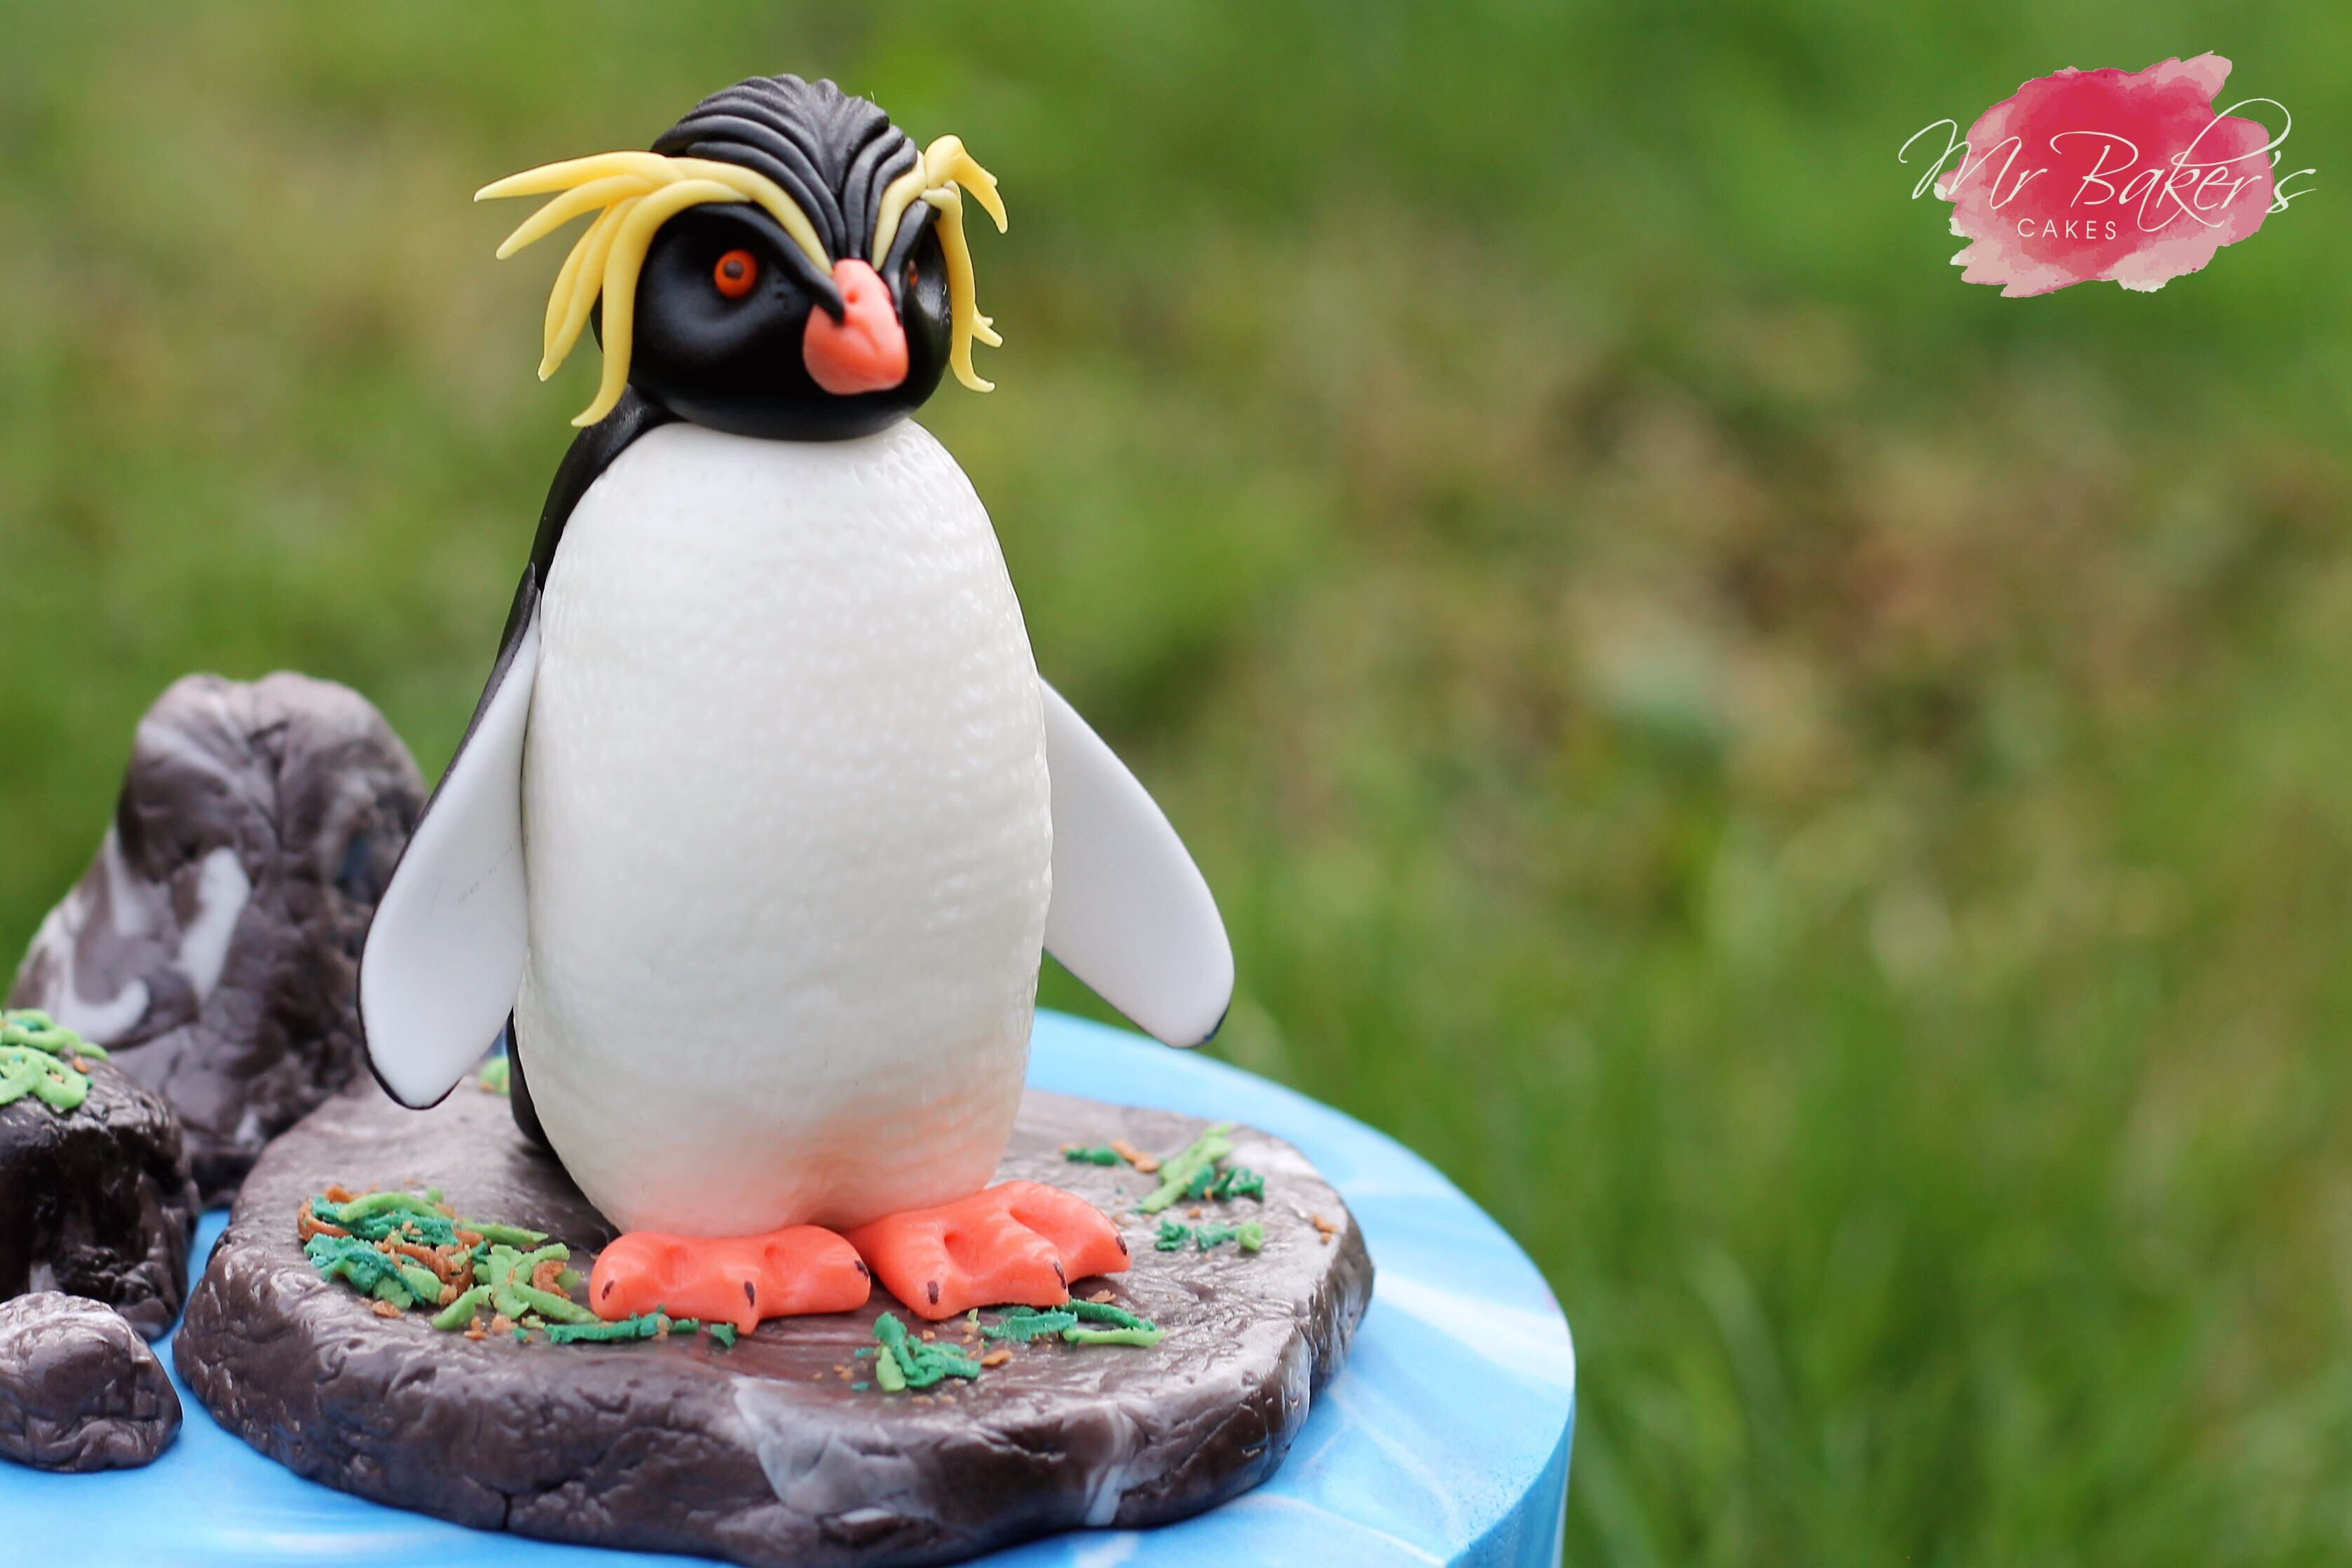 Rockhopper Penguin by Mr Baker Cakes